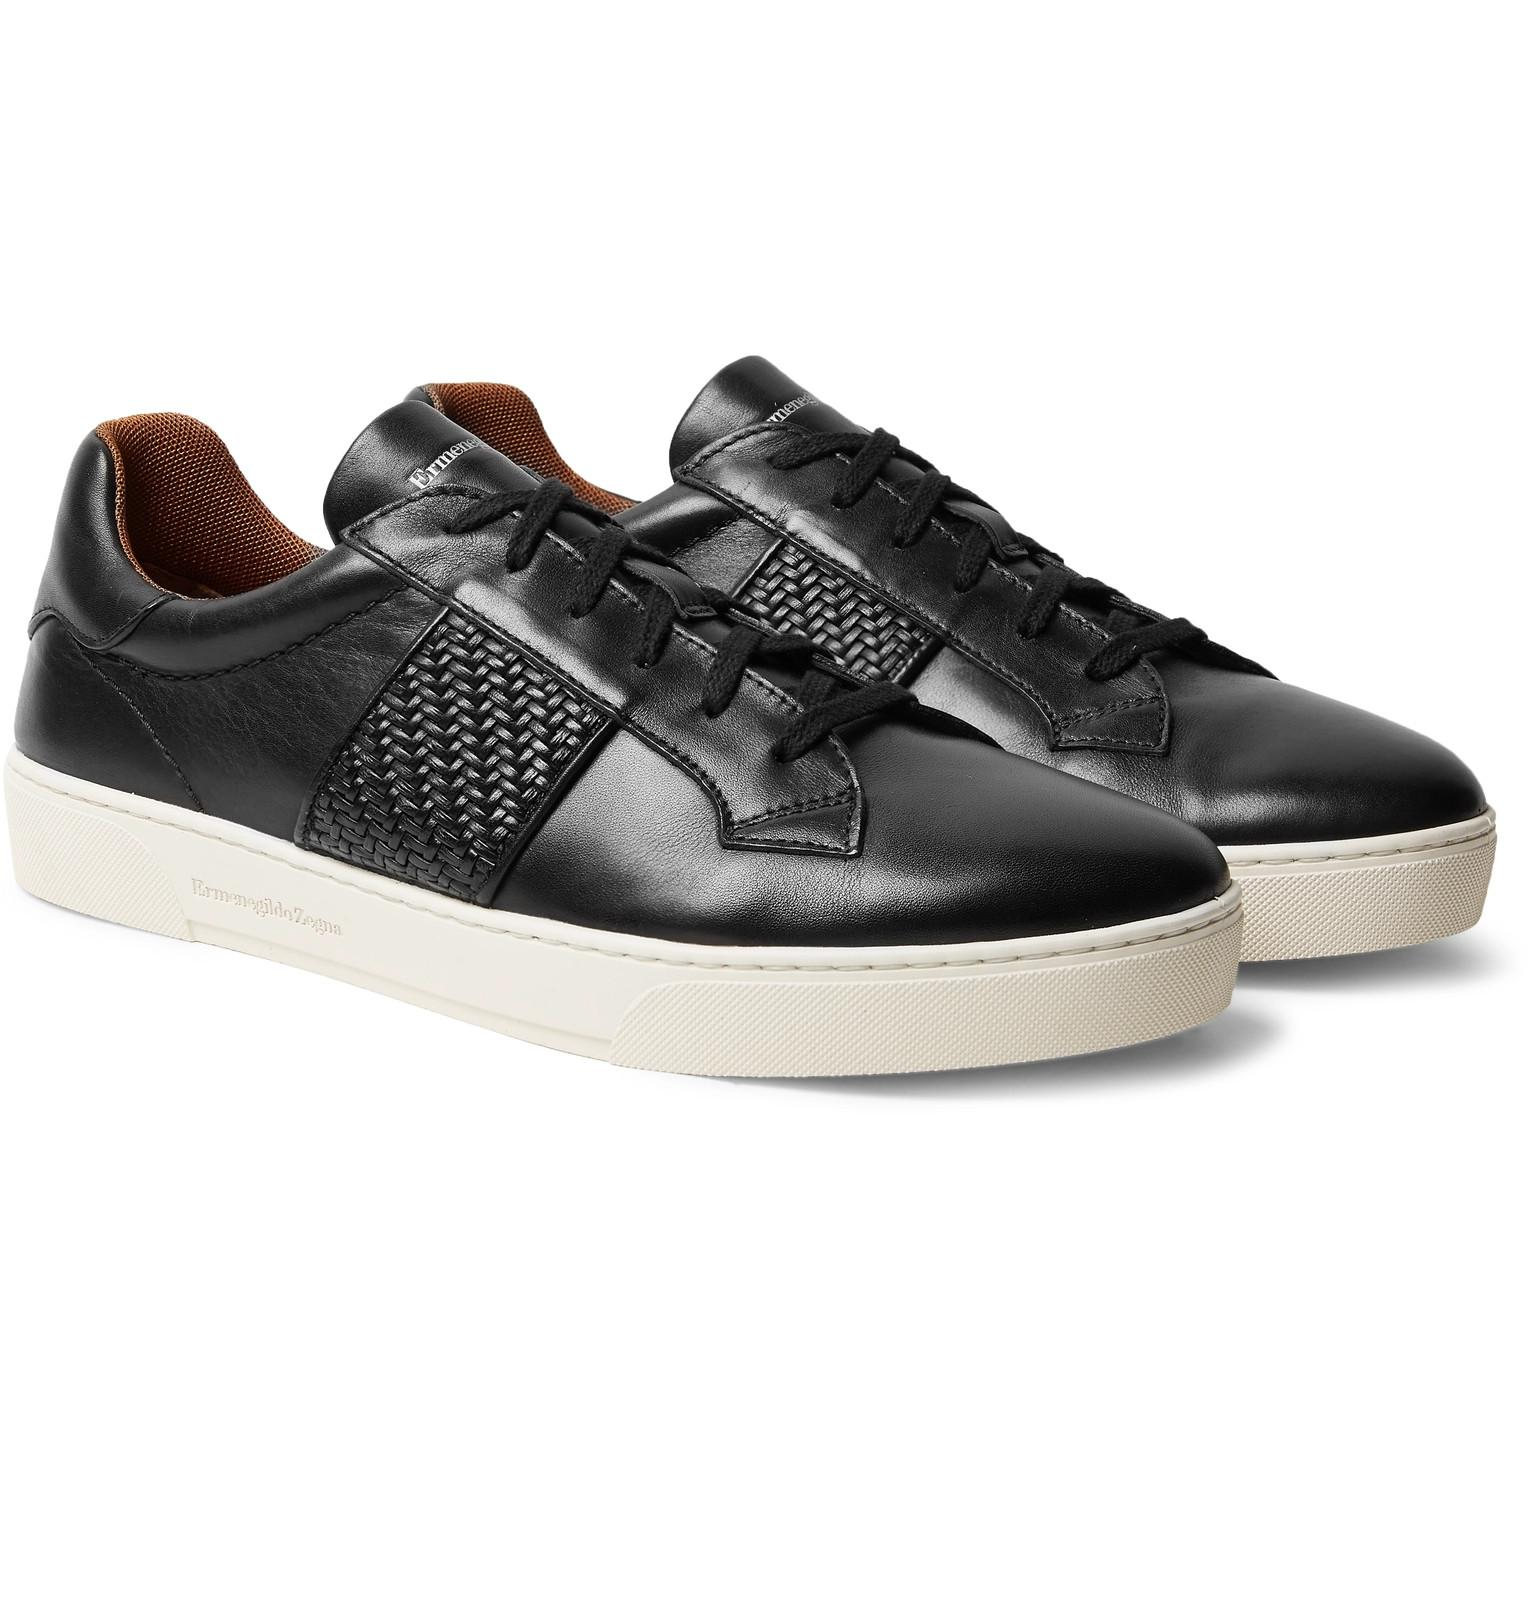 Pelle Tessuta-panelled Leather Sneakers Ermenegildo Zegna